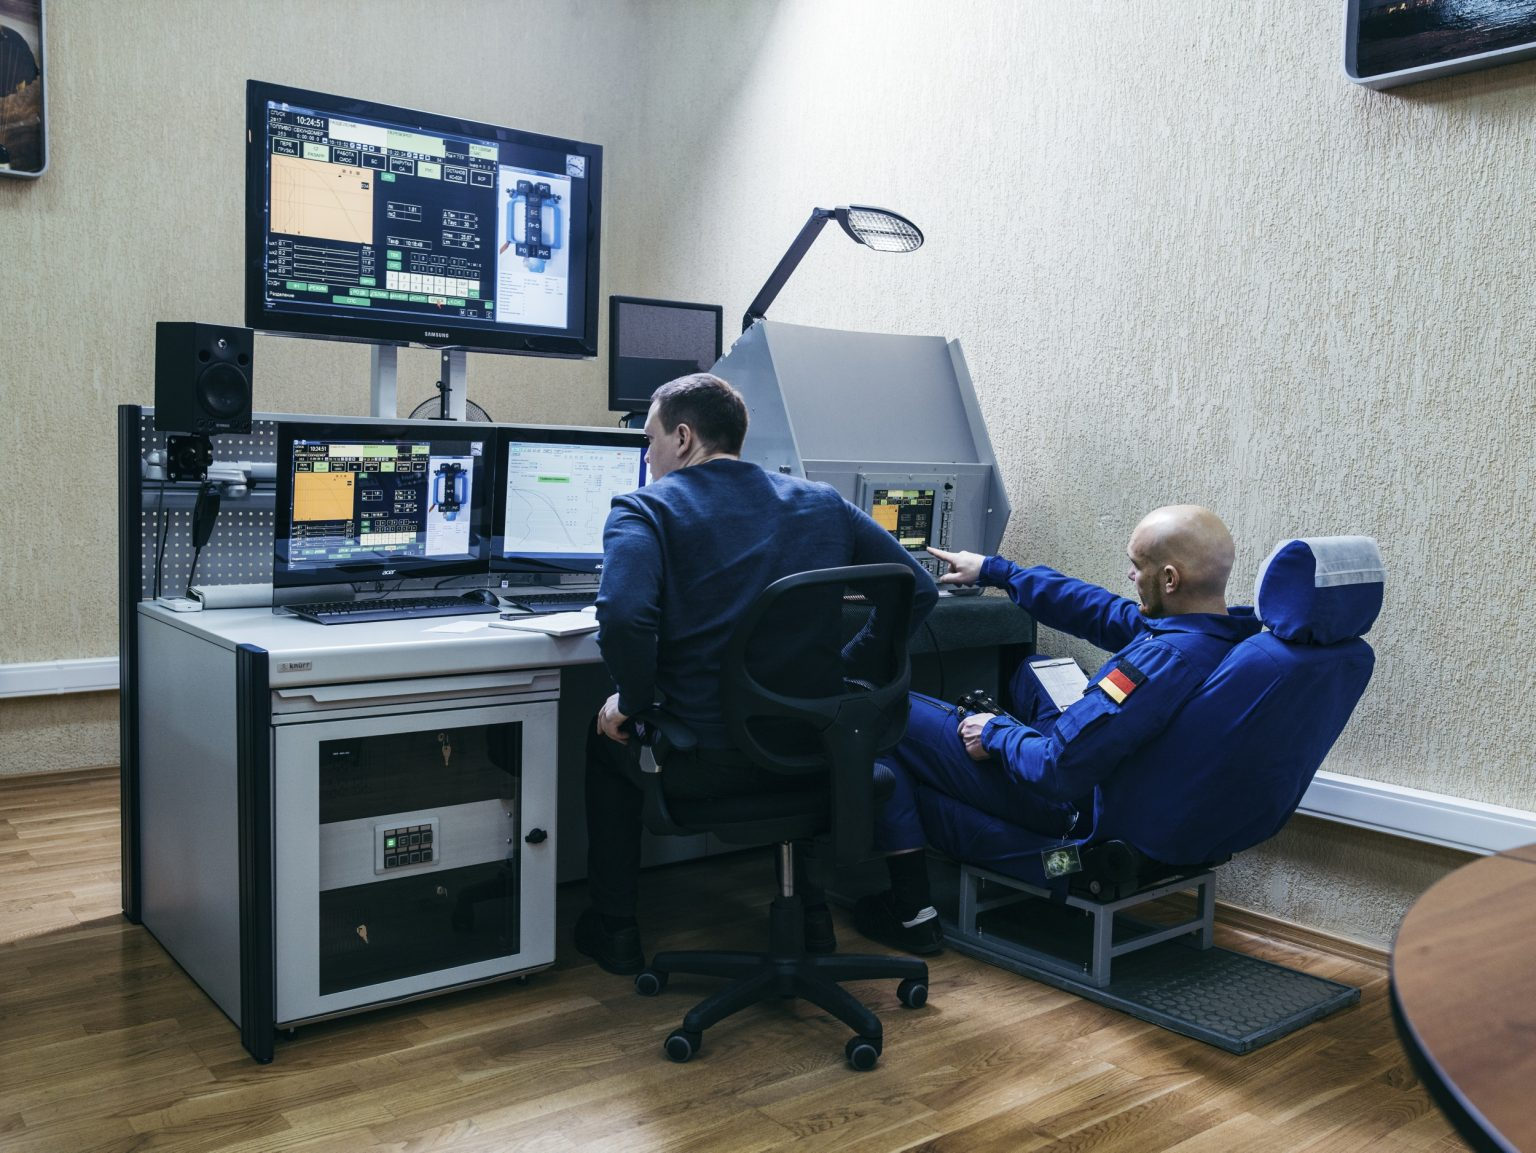 Alexander Gerst during a Soyuz Rocket simulation. Soyuz is the name by which a series of vehicles was developed for the space program of the Soviet Union is known. The first manned flight took place on April 23, 1967, ended with the death of pilot Vladimir Komarov. Since 2011, the year in which the Space Shuttle service ended, waiting for the new generation of space craft, the Soyuz is the only spacecraft capable of transporting astronauts to the International Space Station. Star City, Russia, 2018